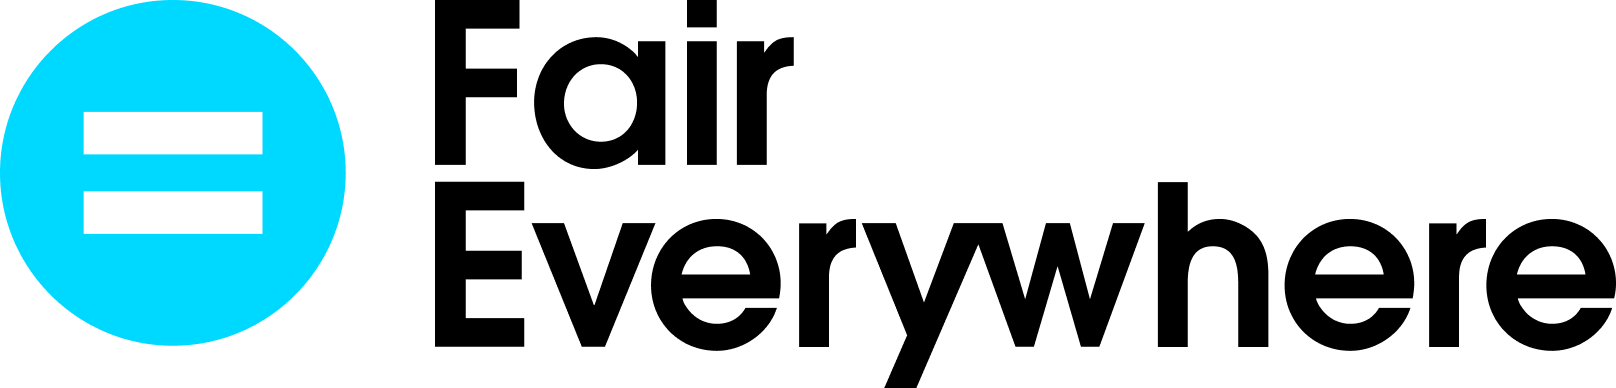 Fair Everywhere logo